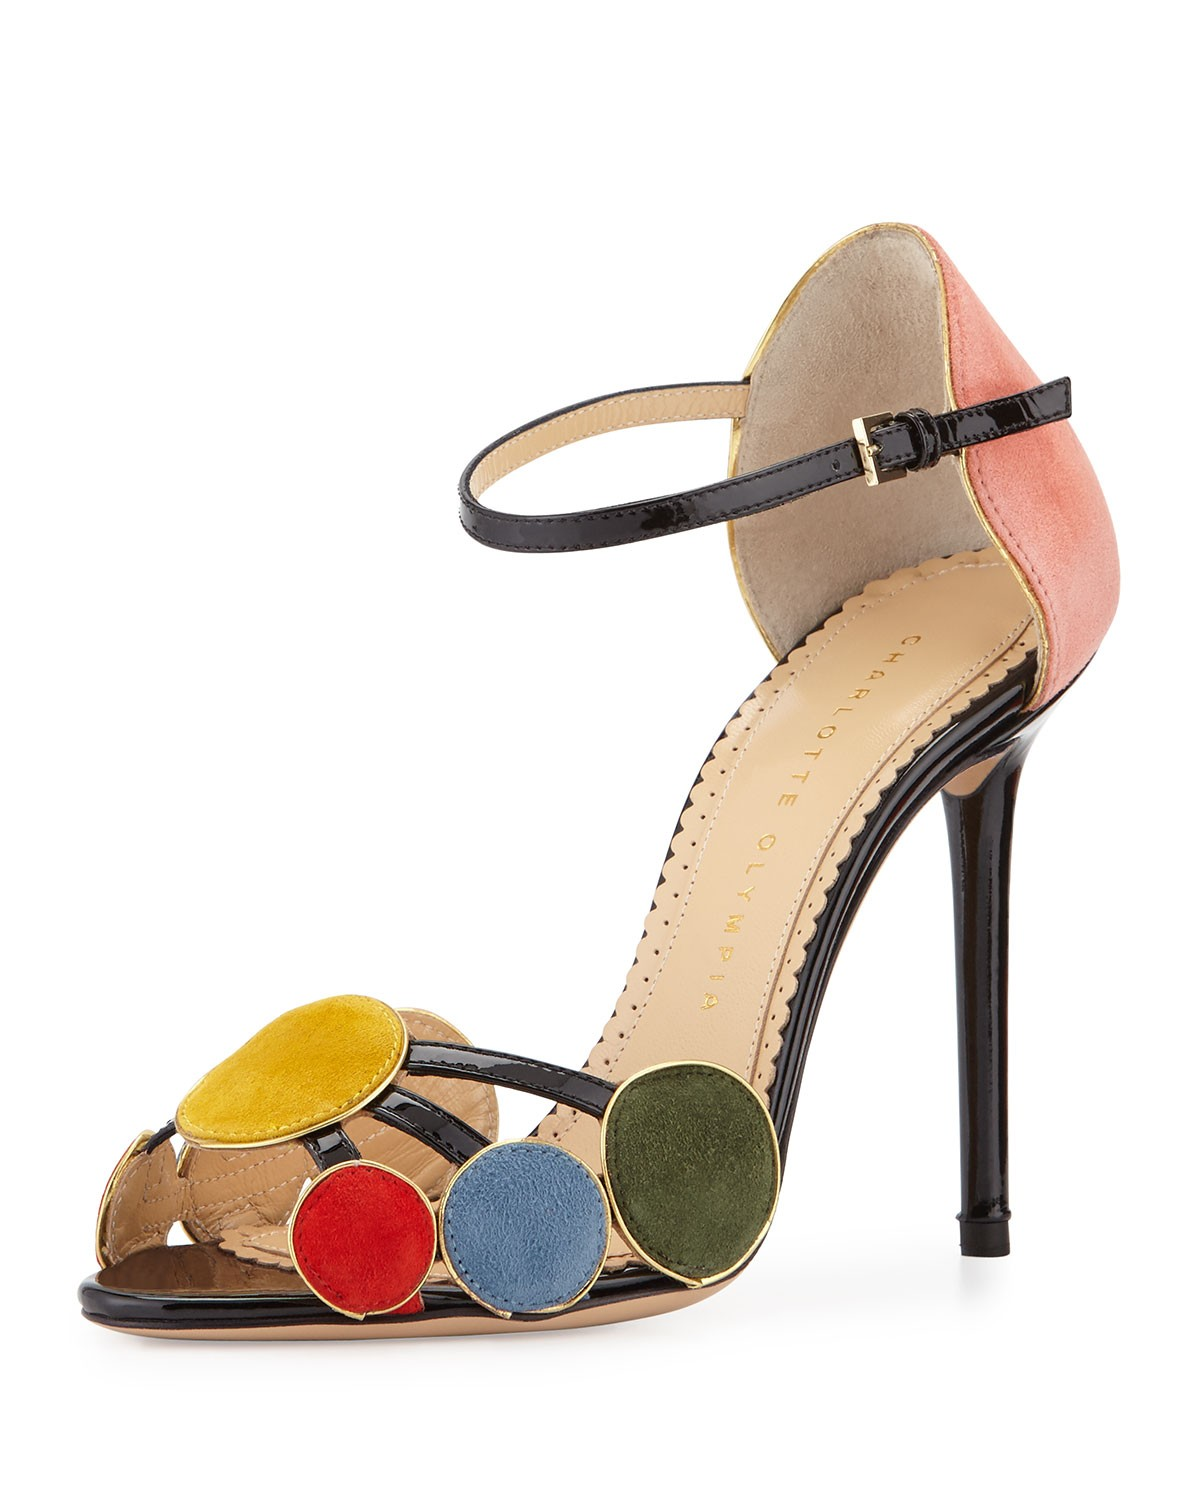 Contemporary Suede Circle Sandal, Multi - Charlotte Olympia